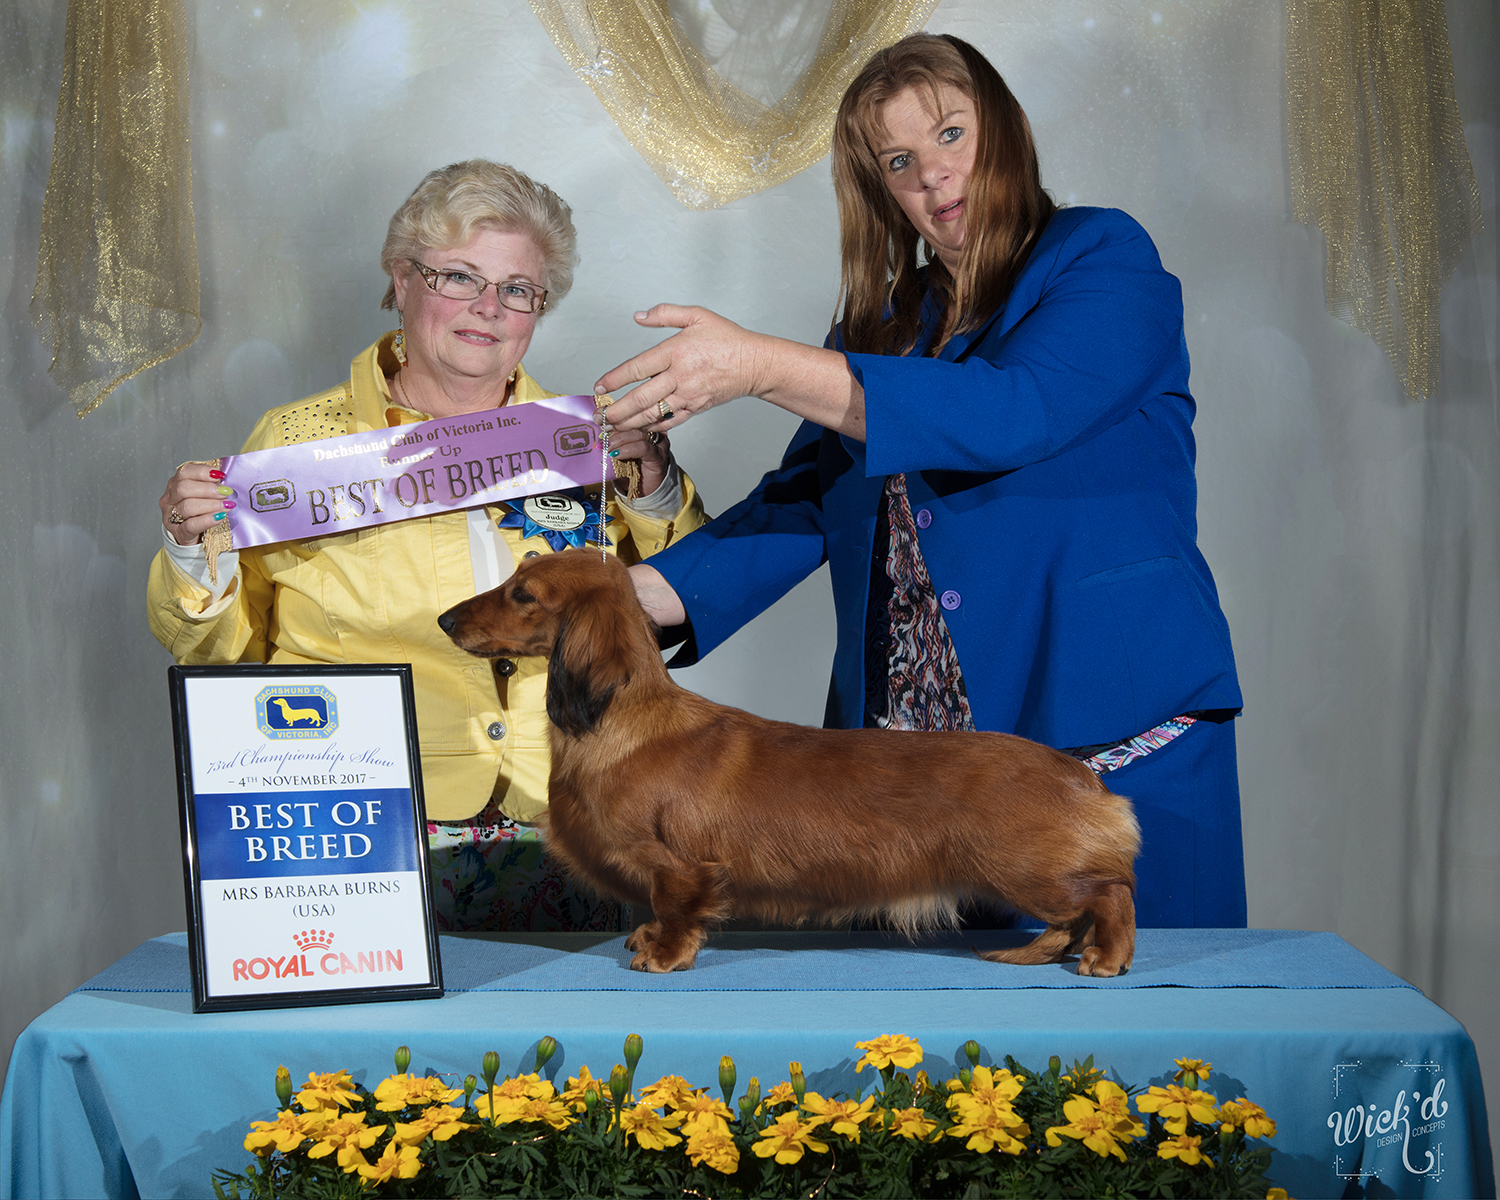 'Madonna' Best of Breed at the Dachshund Club of Victoria Inc. - 73rd Championship Show